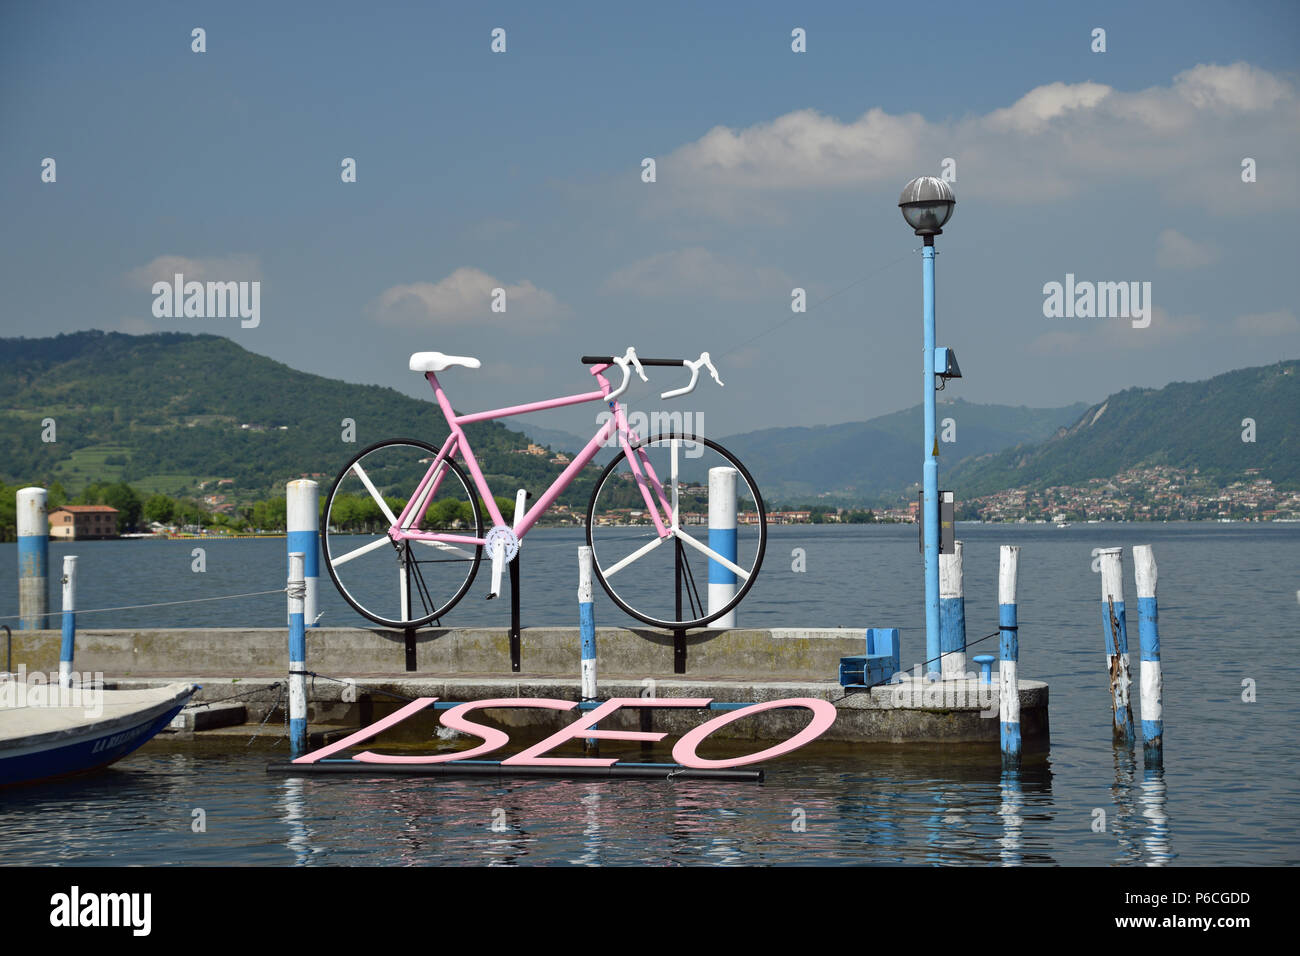 Giro d'Italia on Lake Iseo - Stock Image